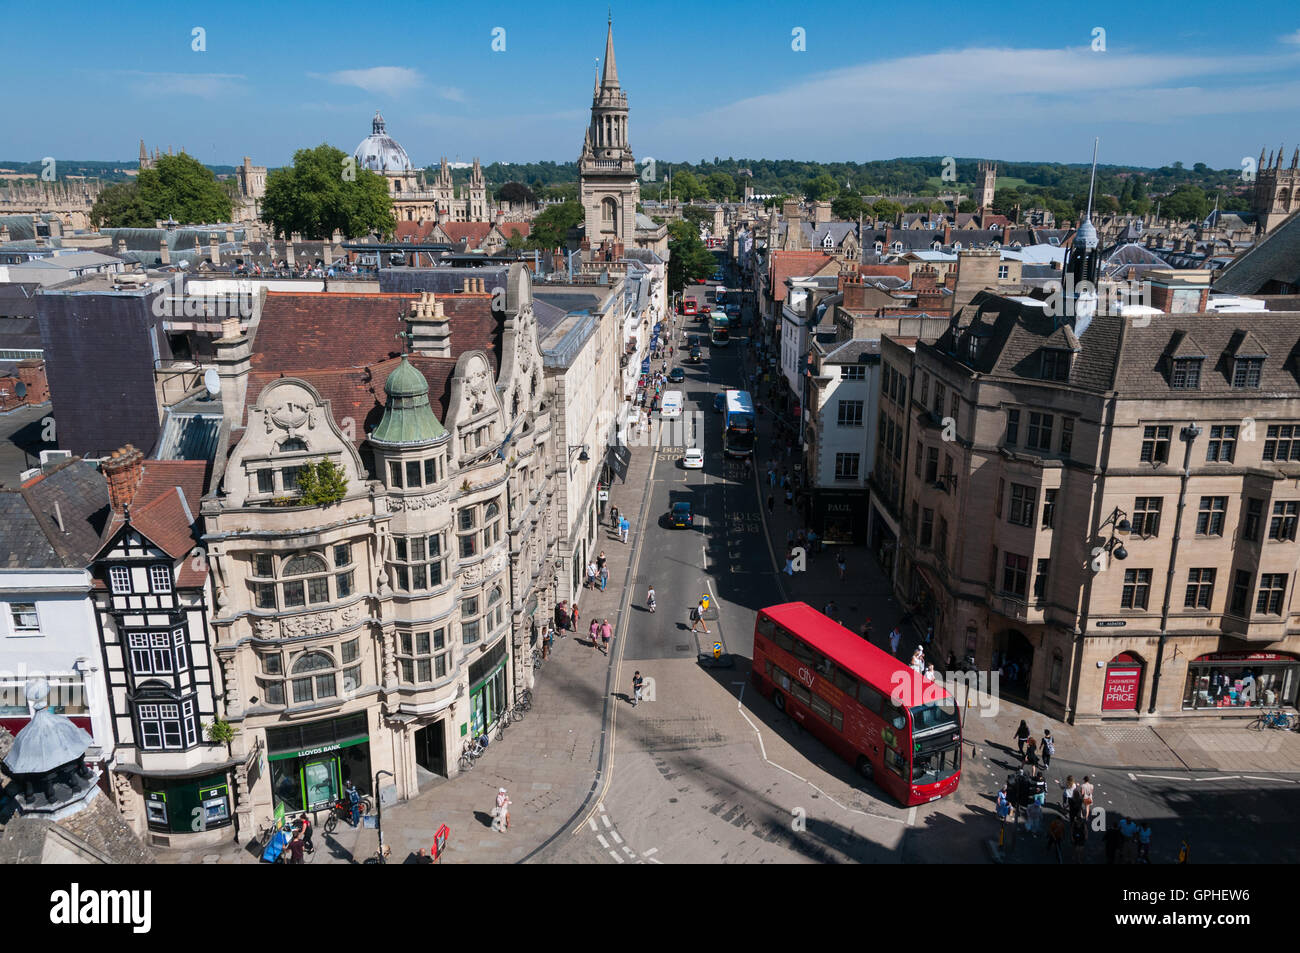 view-of-the-oxford-high-street-oxford-un